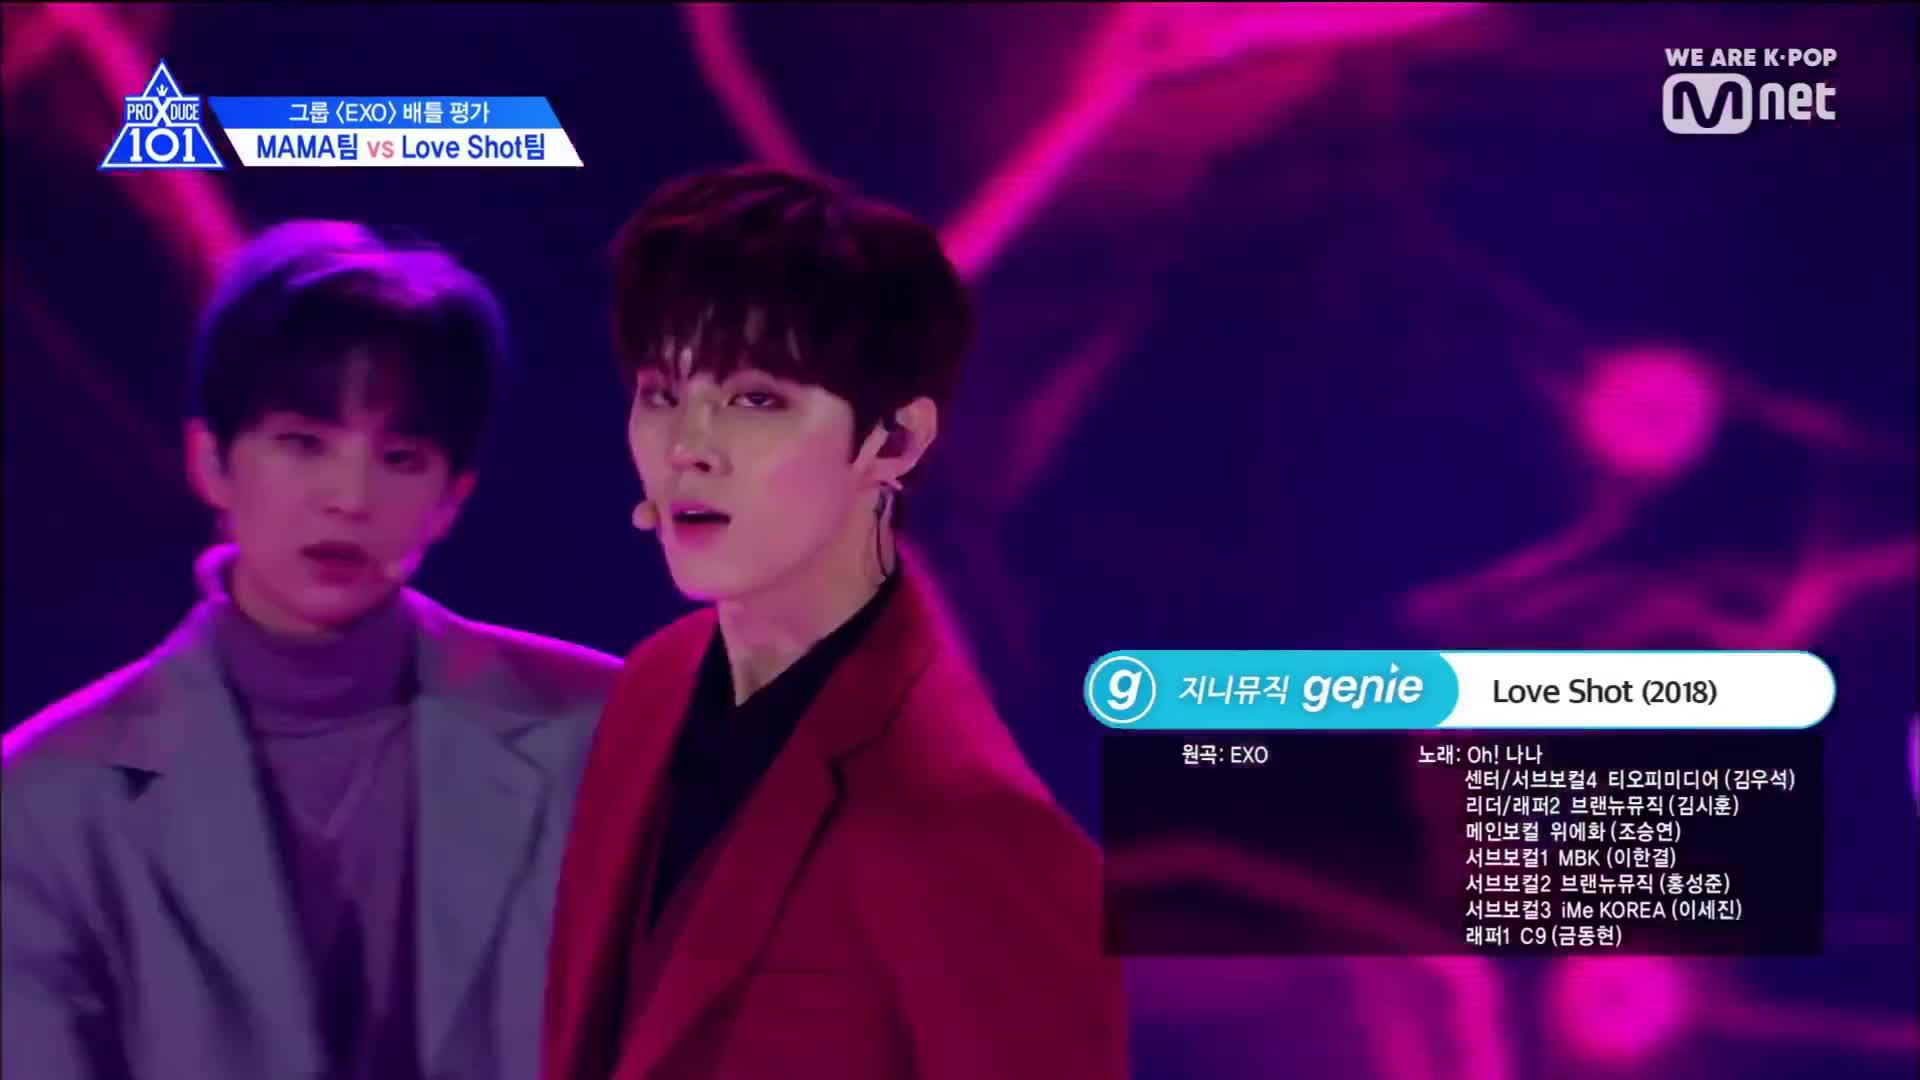 Produce X 101 Gifs Search   Search & Share on Homdor